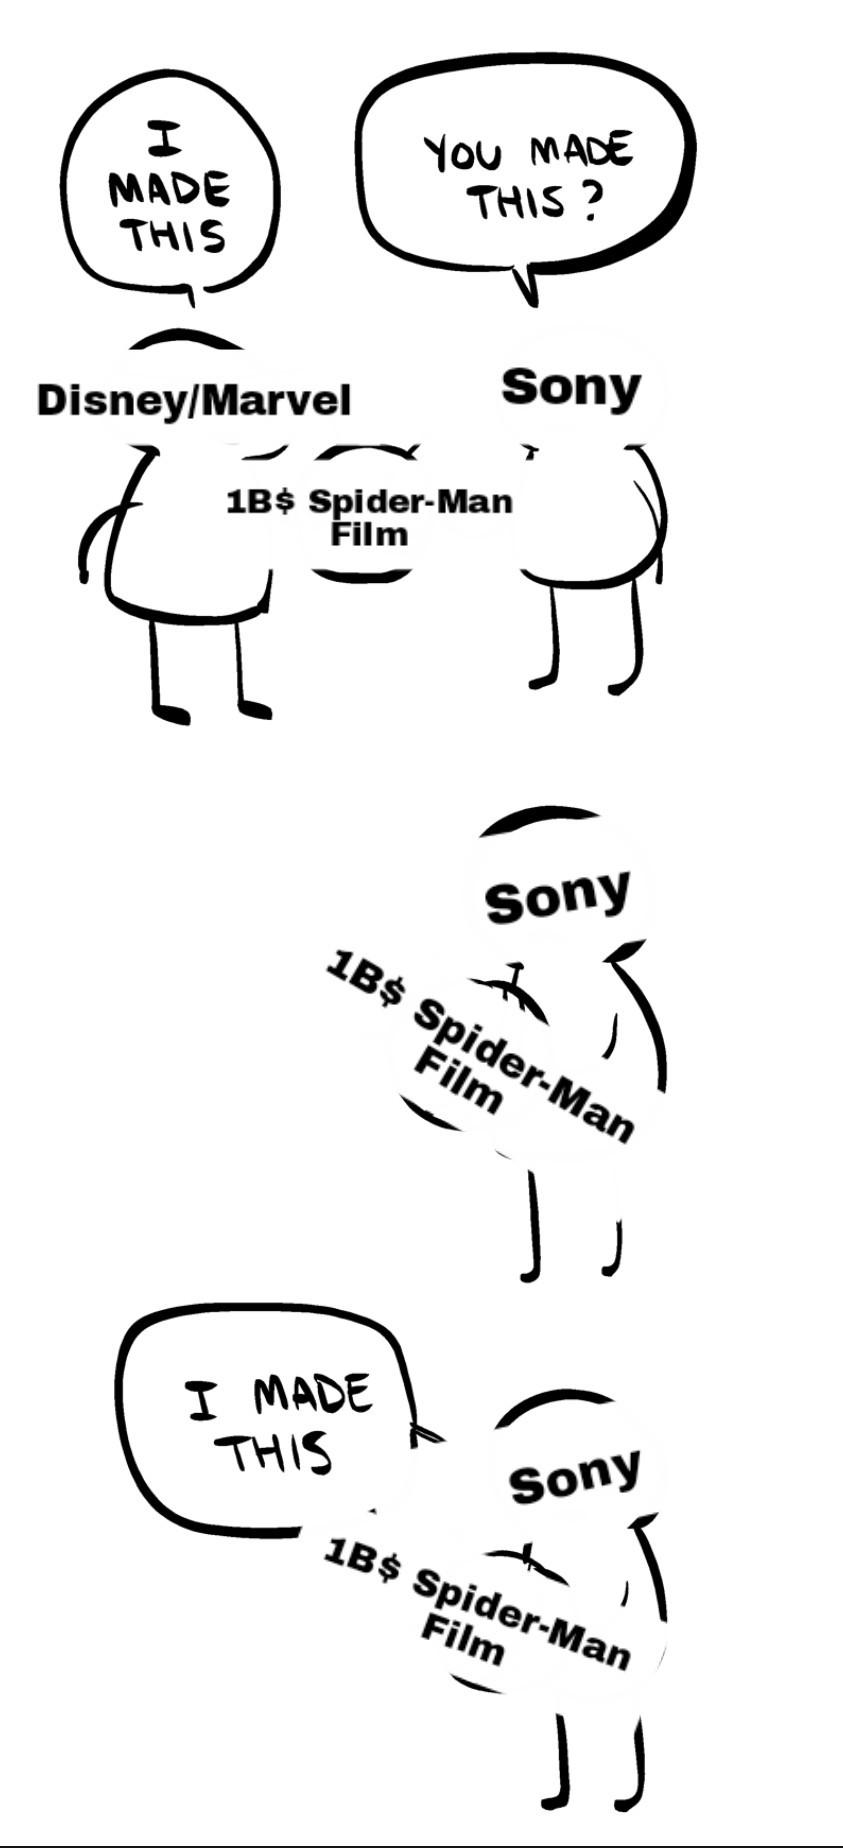 Sony is the kid who brought pencils for the projects and expects to take full credit - meme